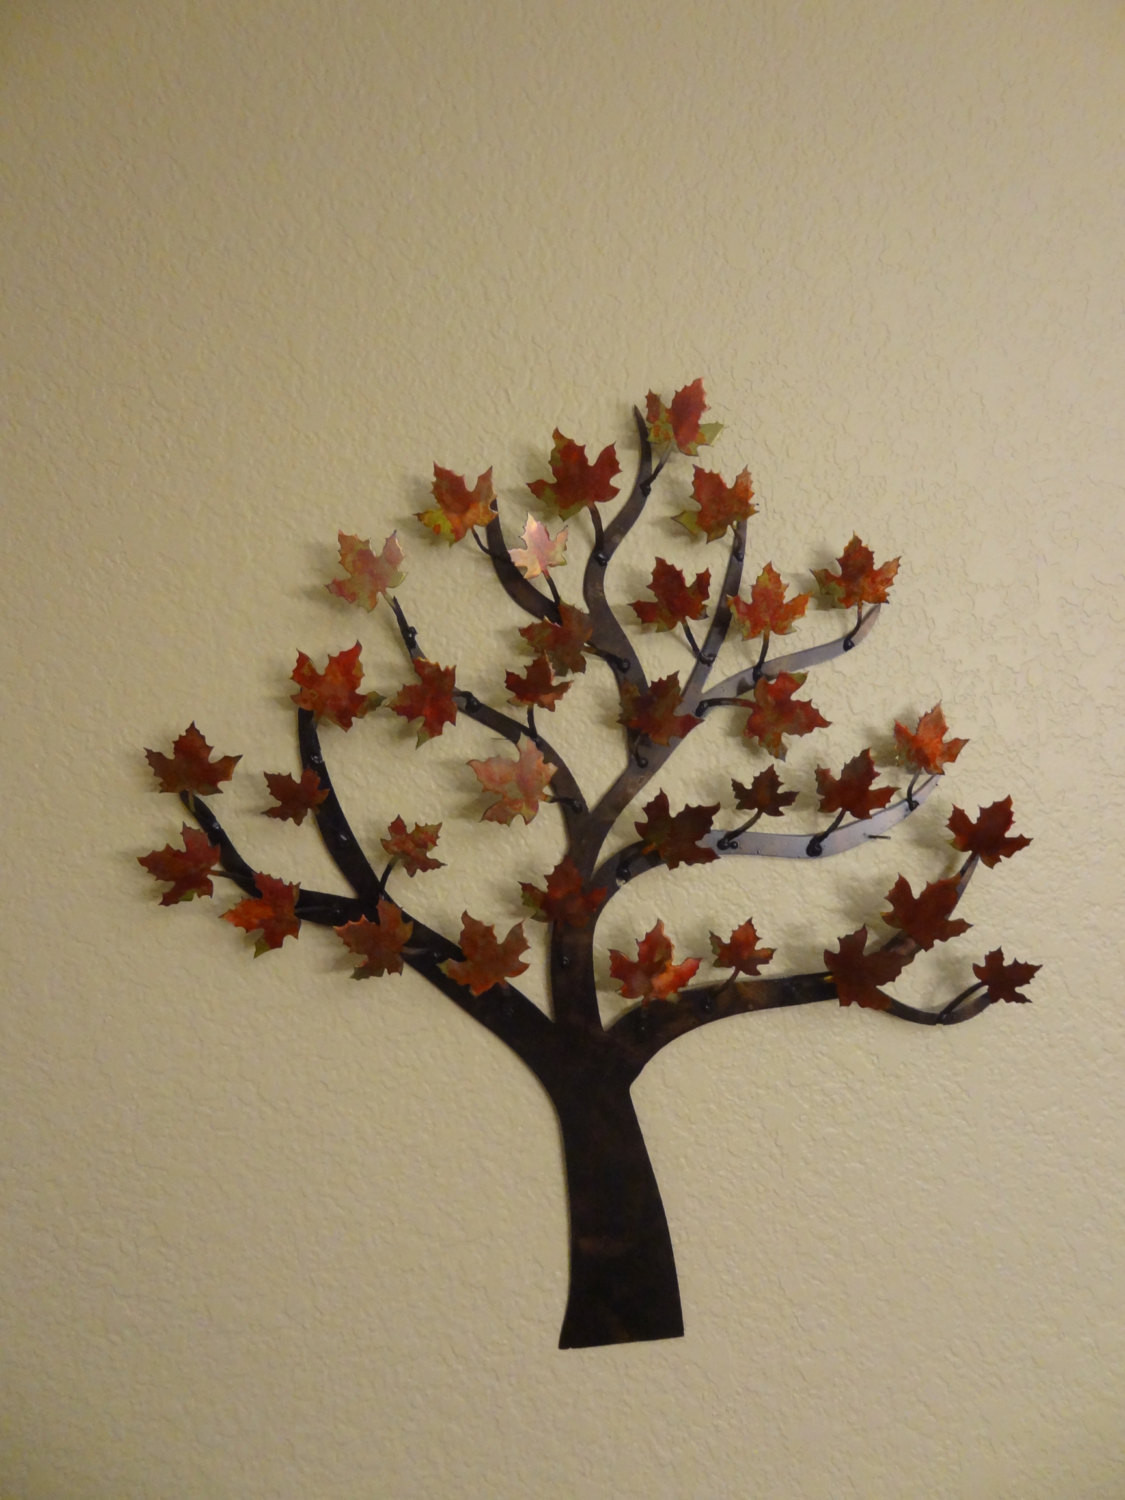 Best ideas about Metal Tree Wall Art . Save or Pin Maple tree Metal tree Wall art Art decor Now.